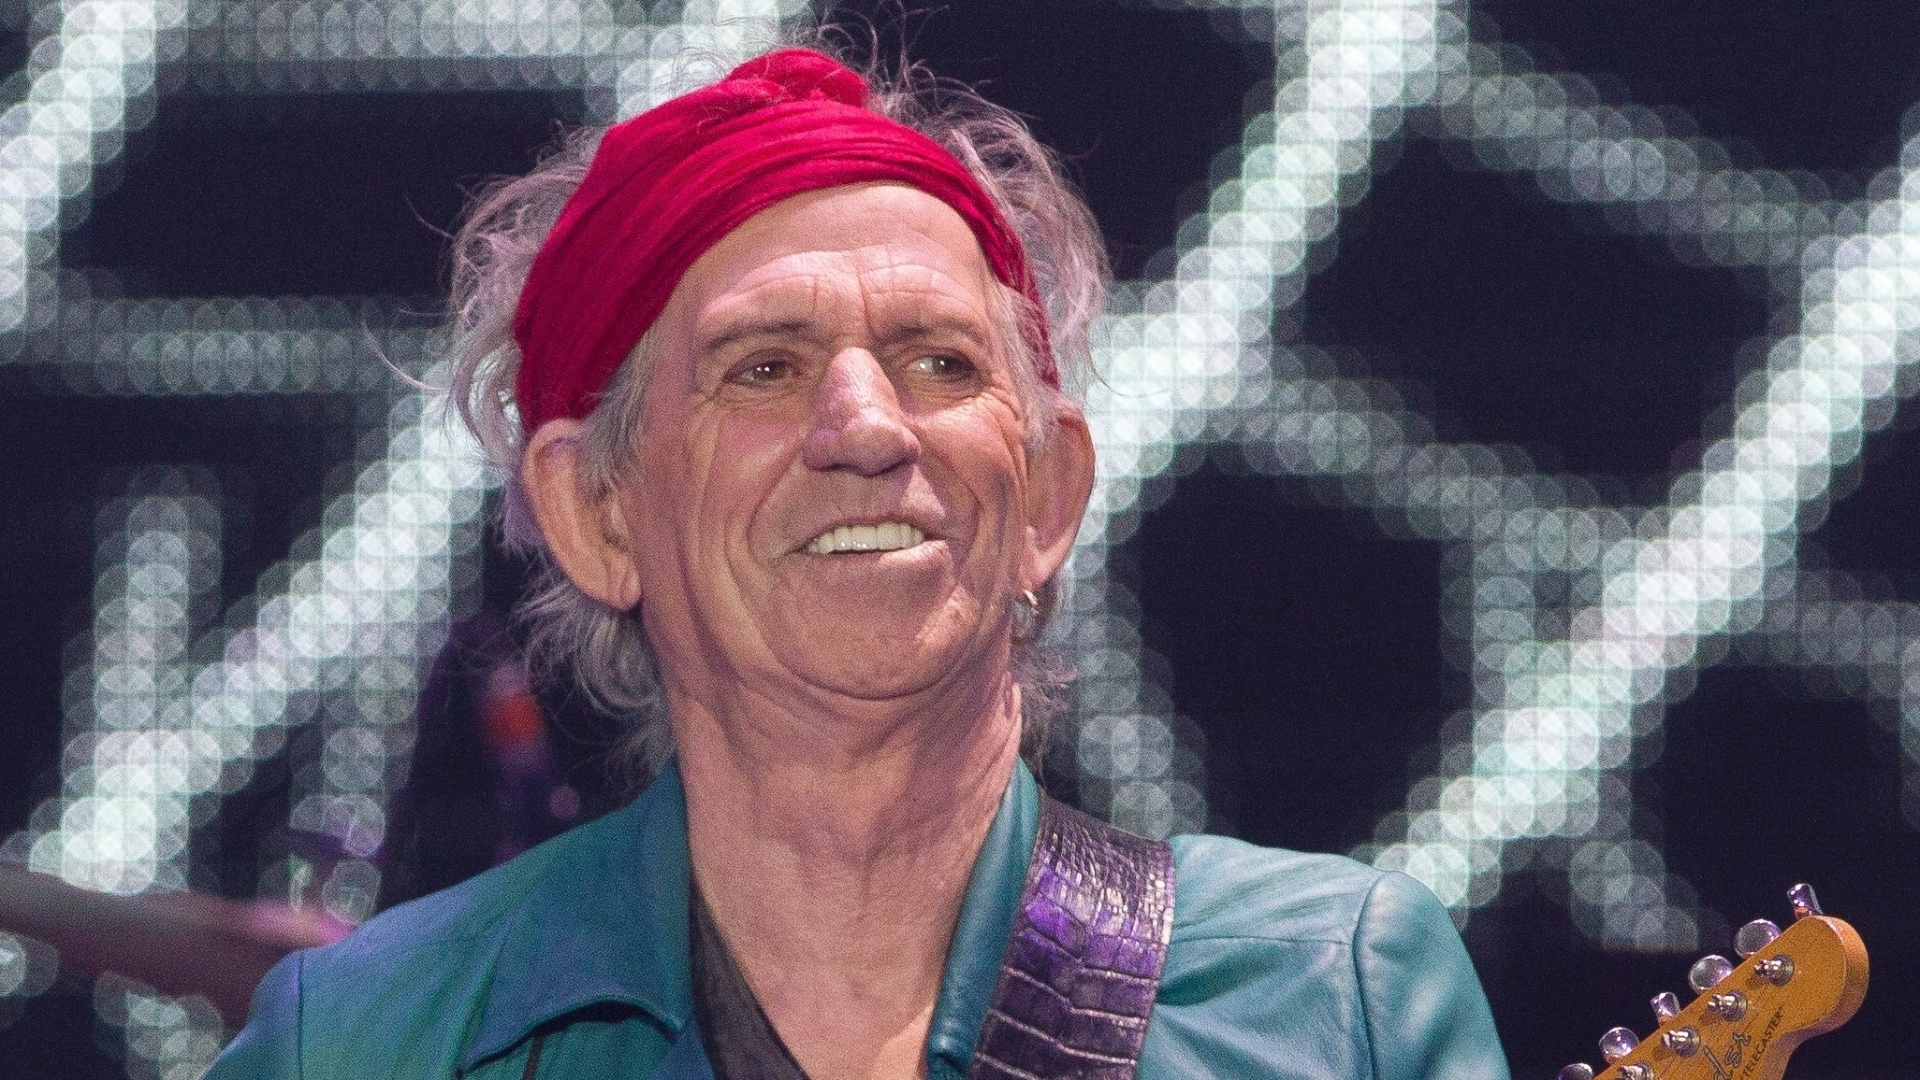  Keith Richards se apresenta na O2 Arena em Londres, no show de retorno dos Rolling Stones (25/11/12)